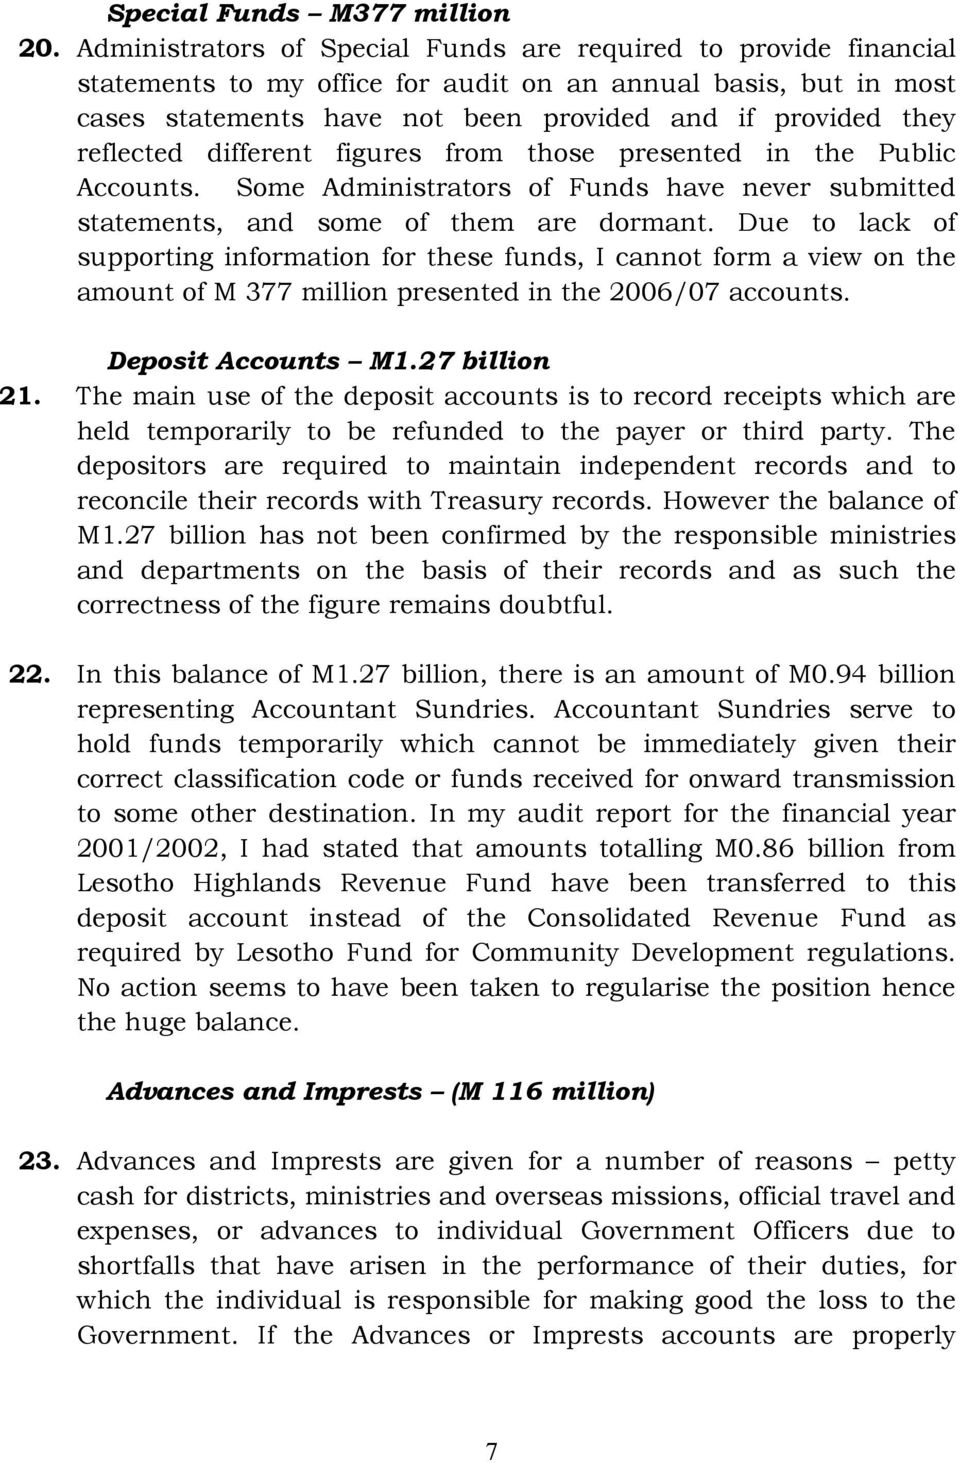 reflected different figures from those presented in the Public Accounts. Some Administrators of Funds have never submitted statements, and some of them are dormant.